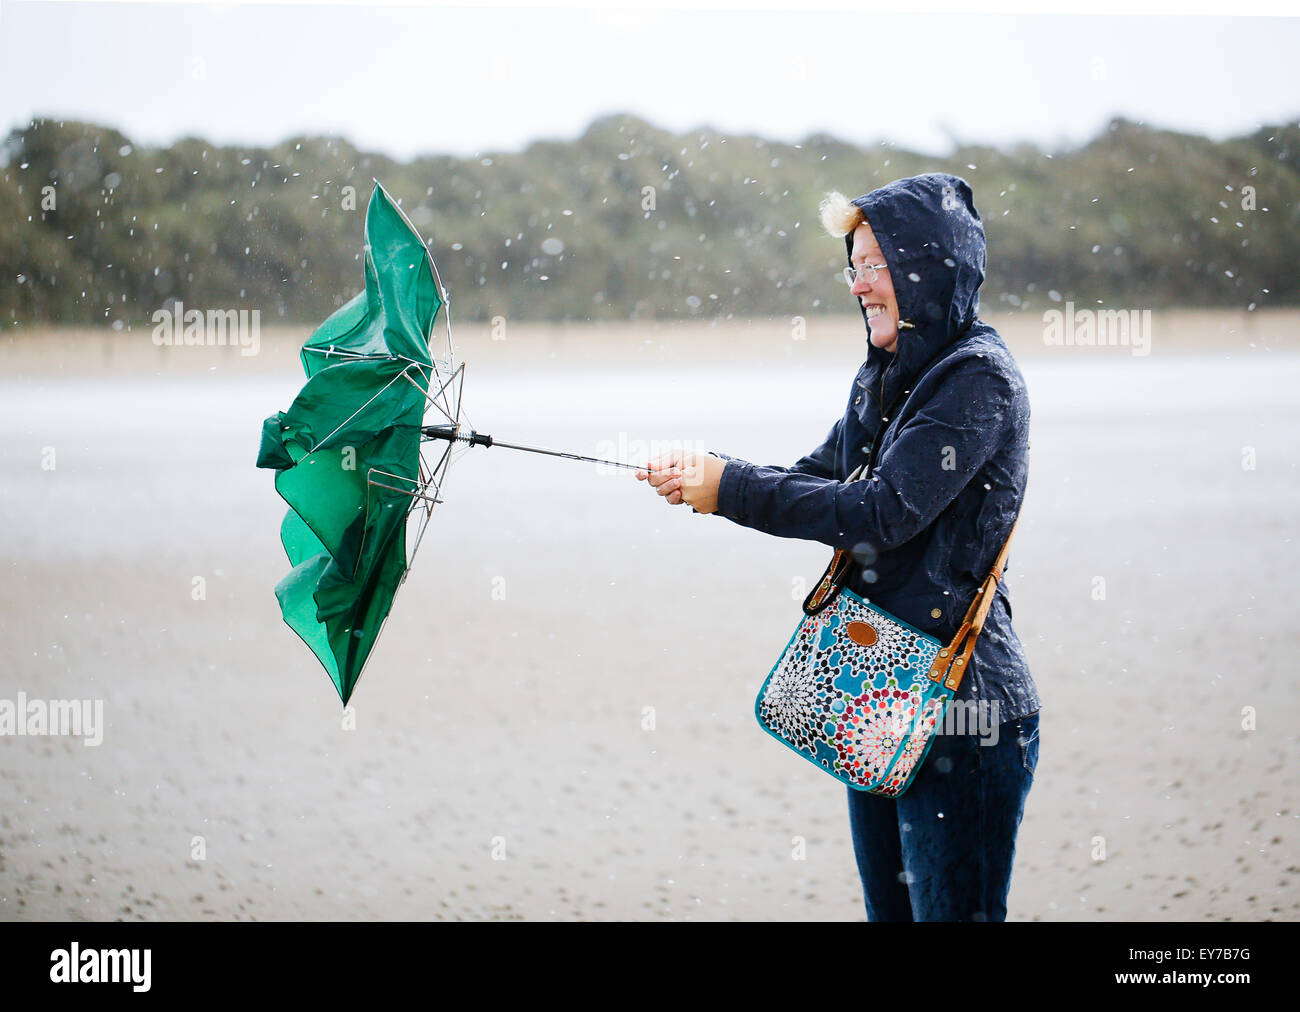 a-woman-holding-an-umbrella-which-has-bl